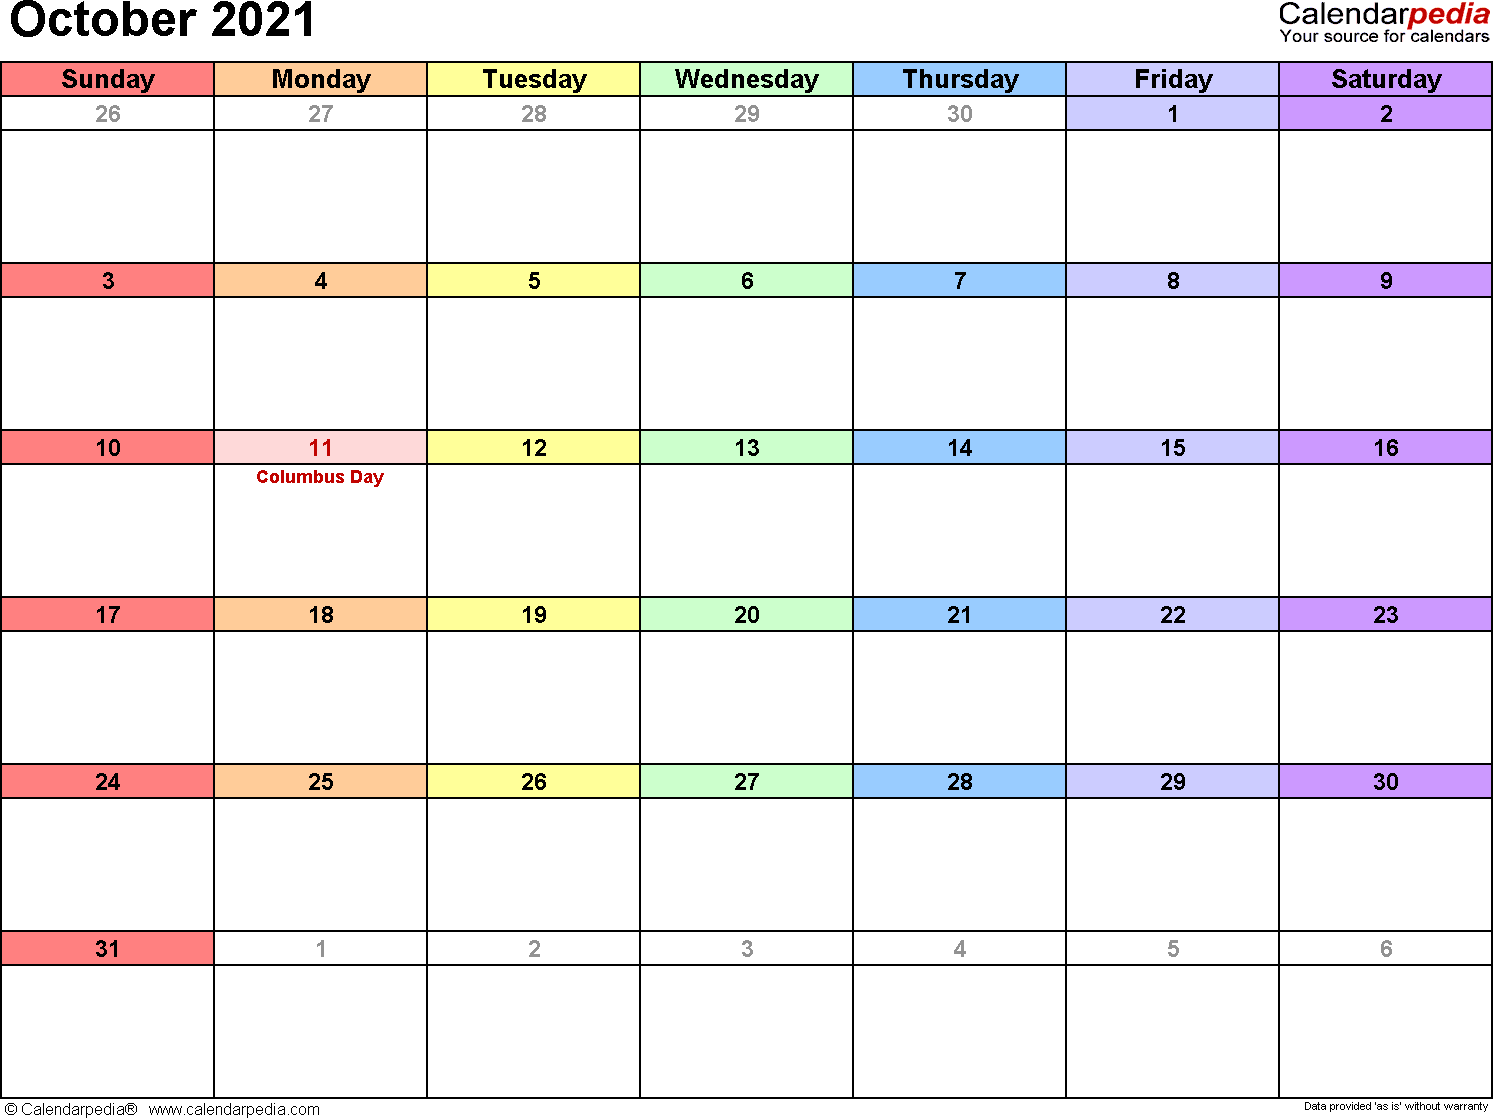 October 2021 calendar printable template